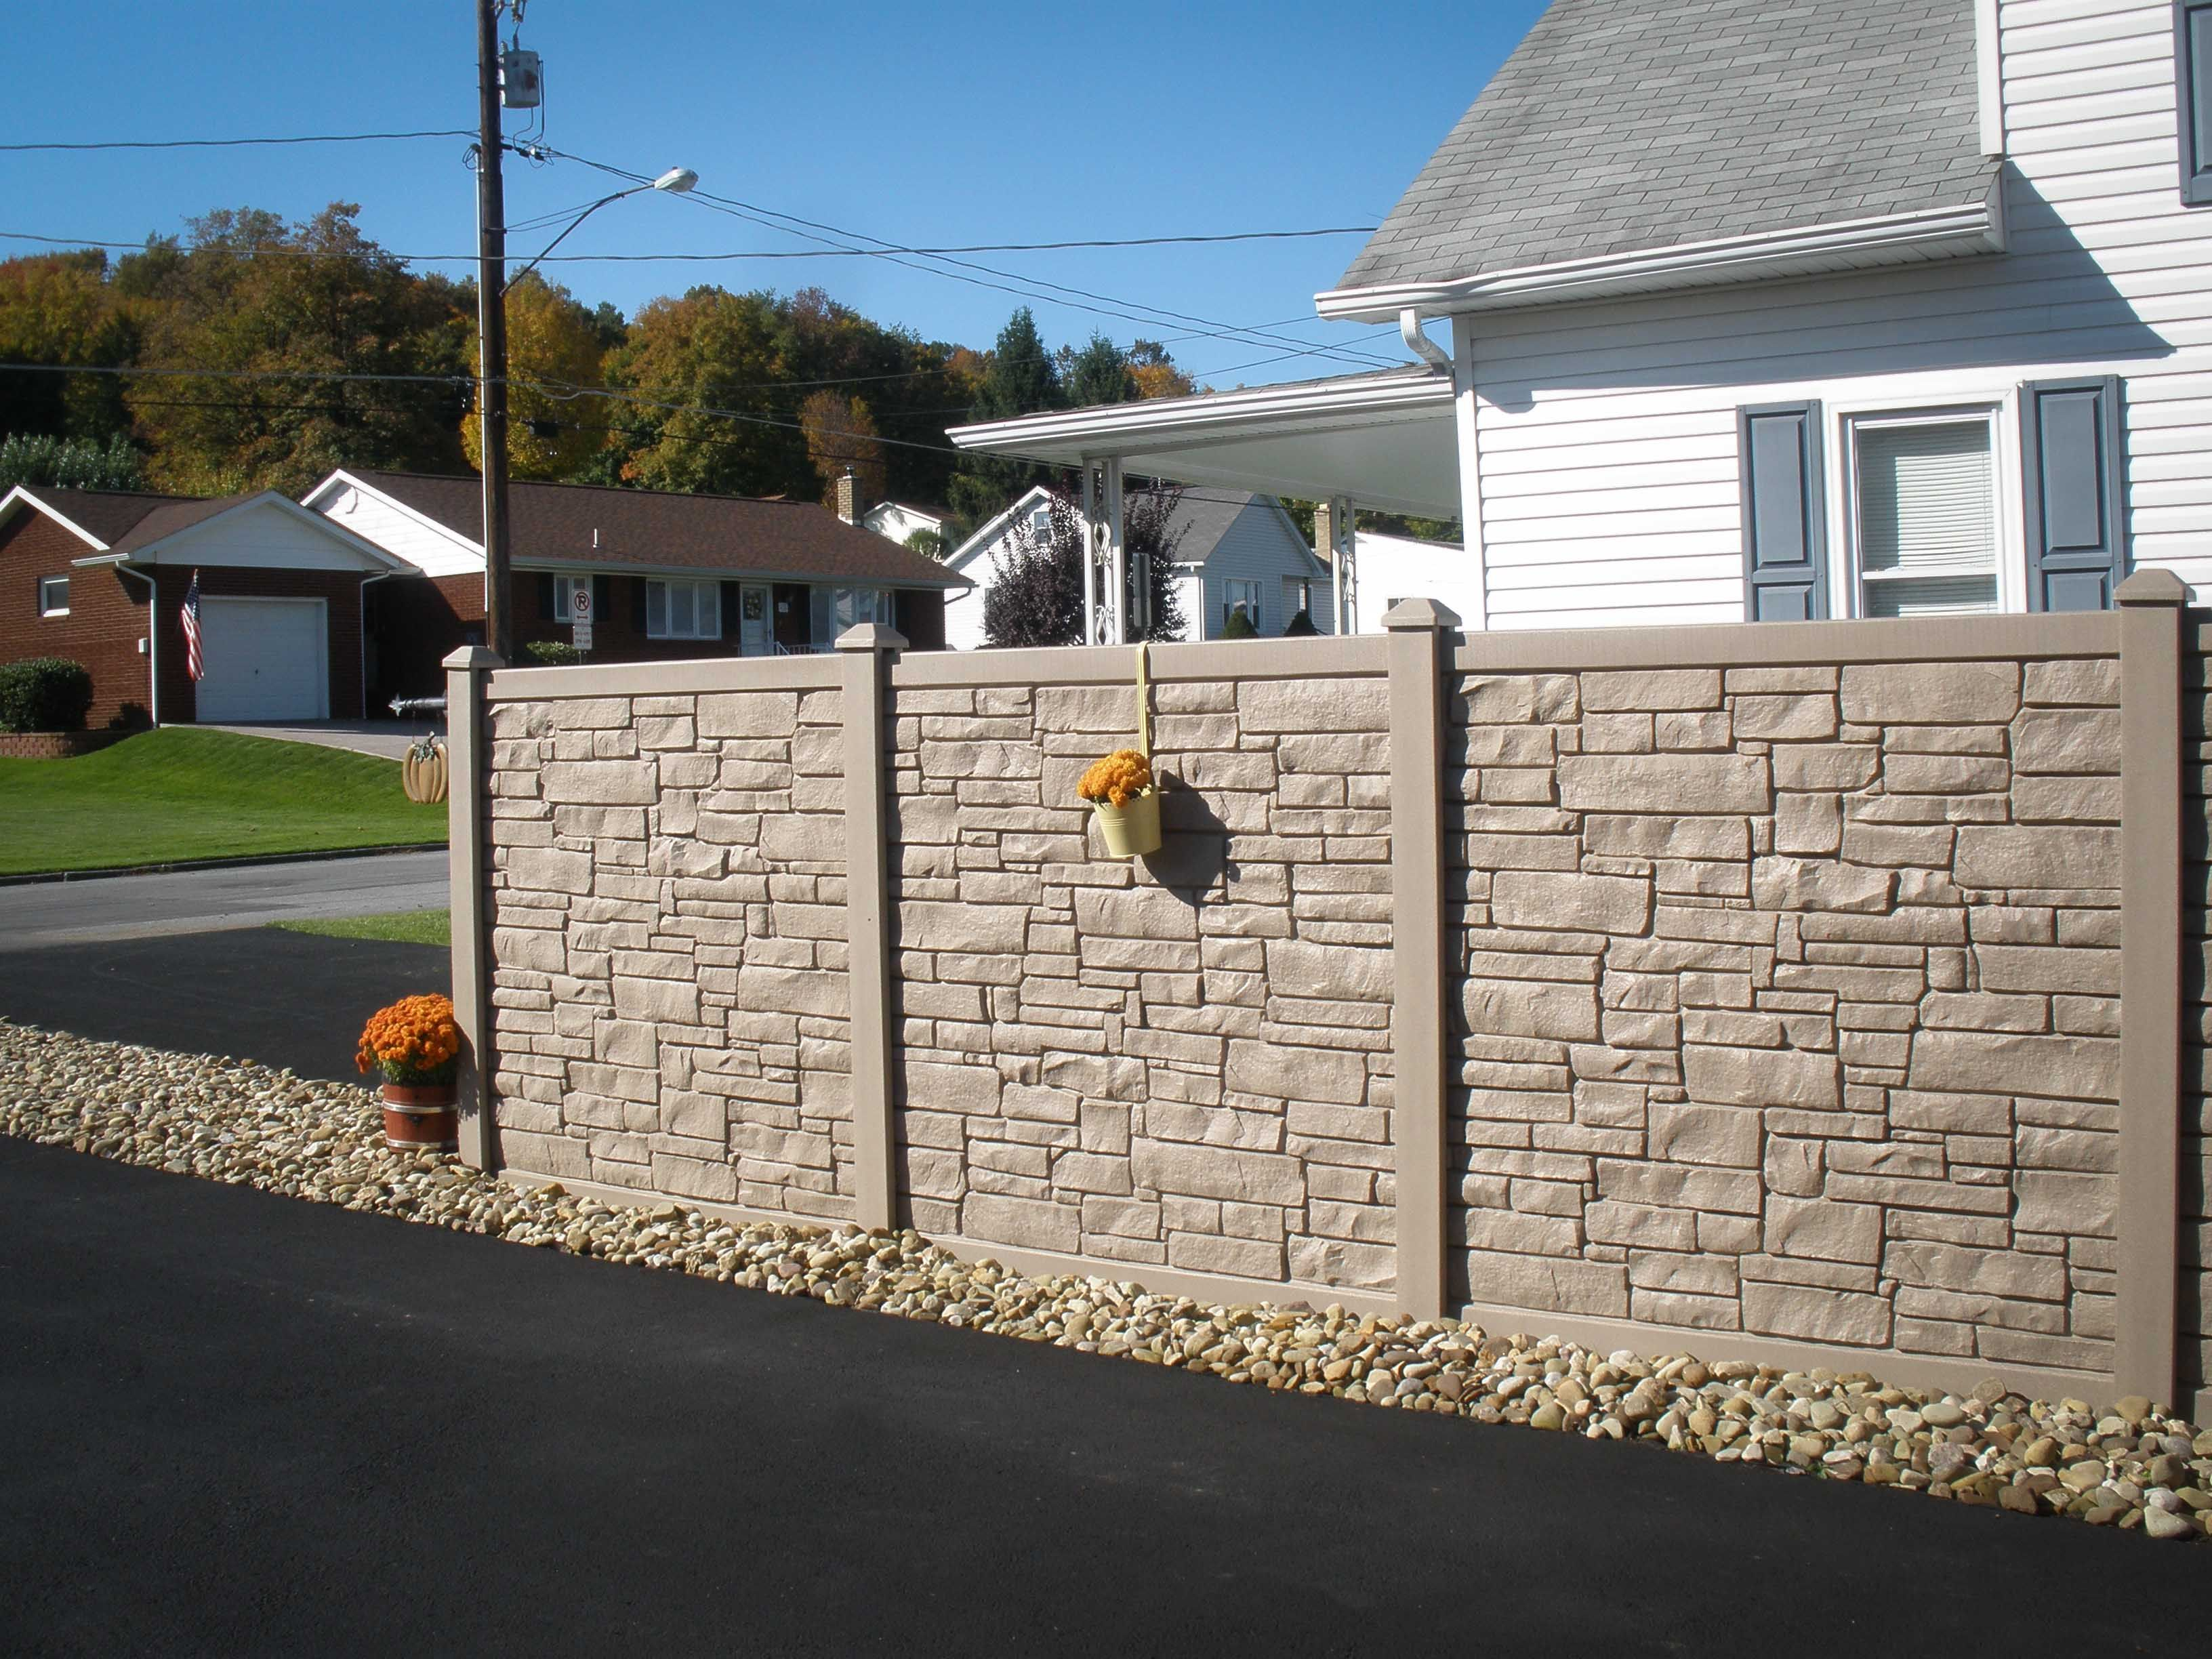 simtek fence is one type of fence we provide at hurricane fence